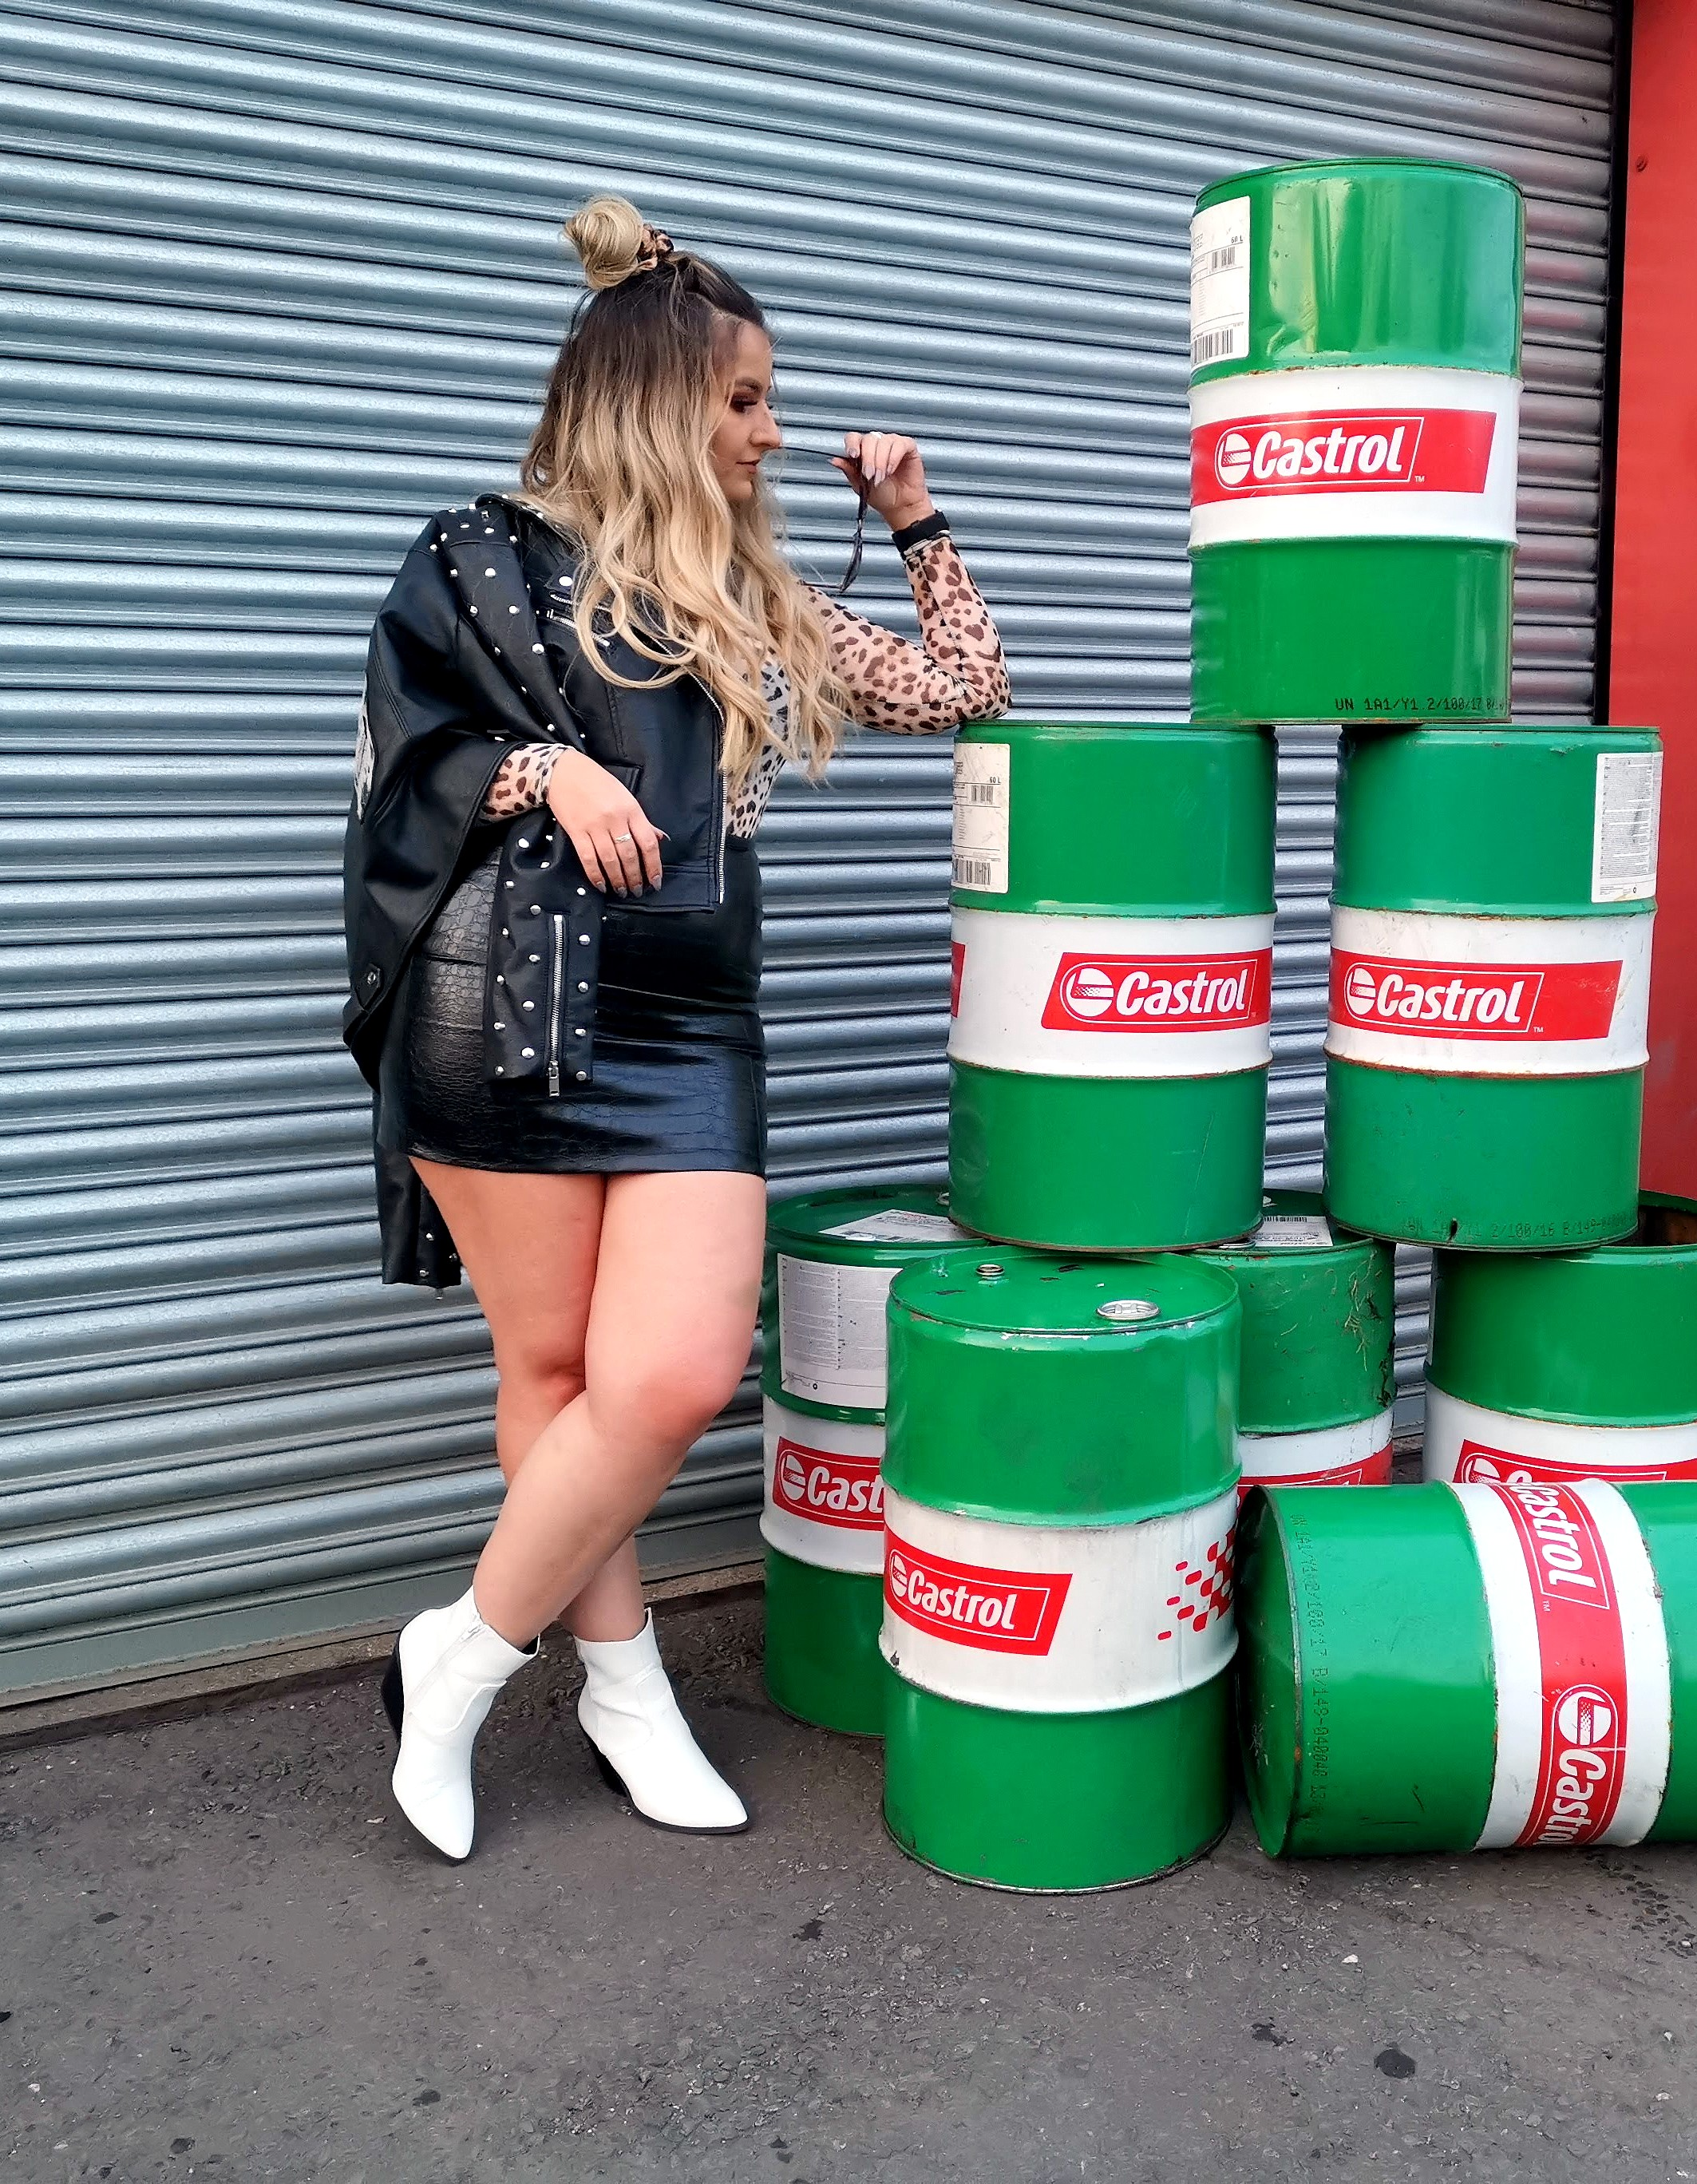 Castrol Featured Image